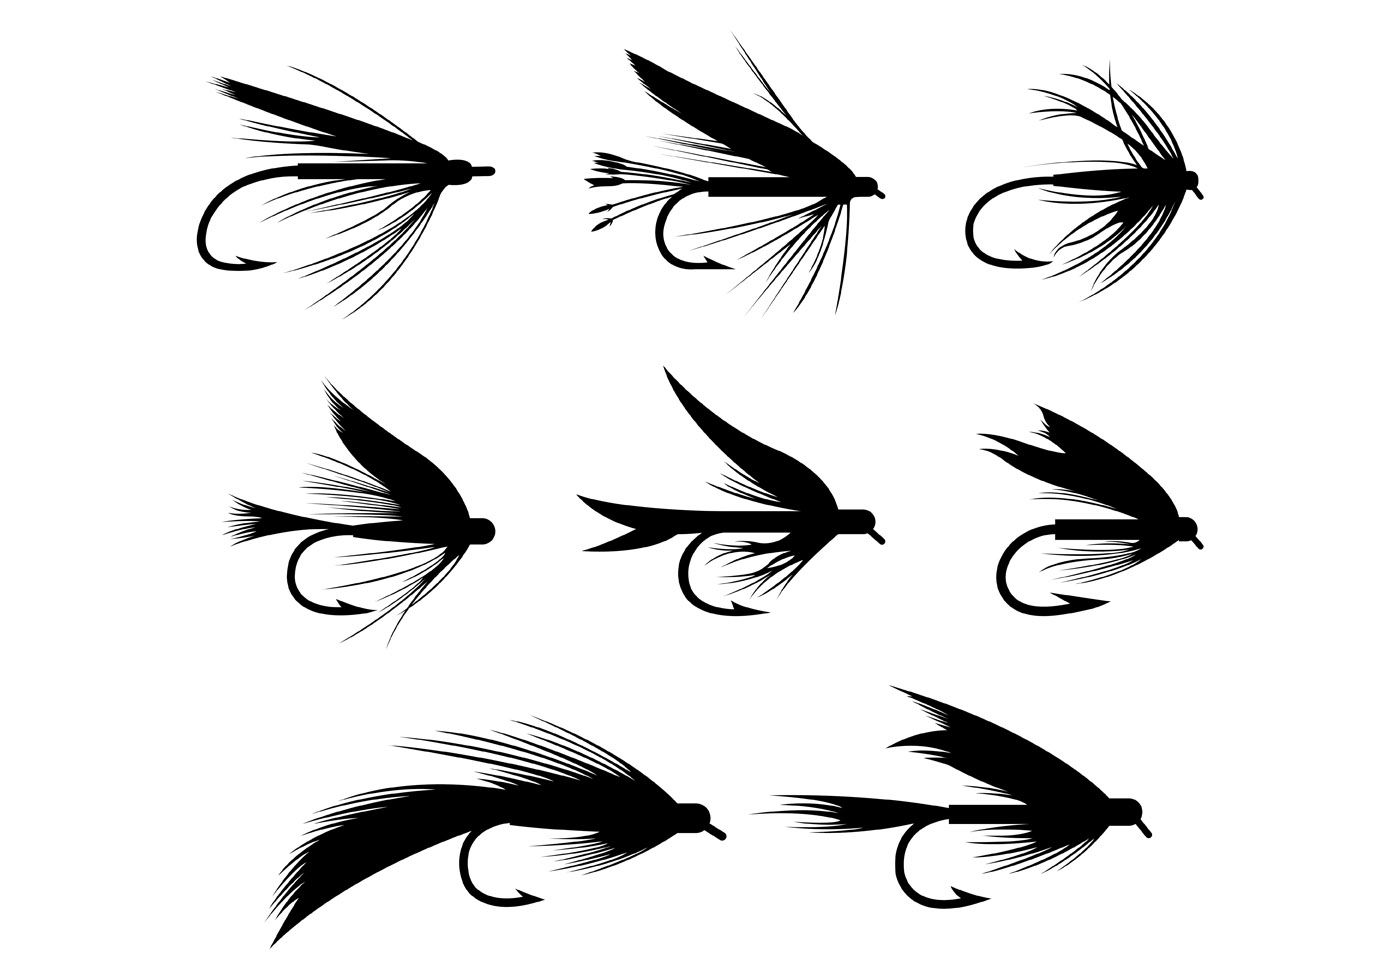 Silhouette Of Fly Fishing Lures Hook Vector Choose From Thousands Of Free Vectors Clip Art Designs Icons And Fly Fishing Tattoo Fish Silhouette Fly Fishing